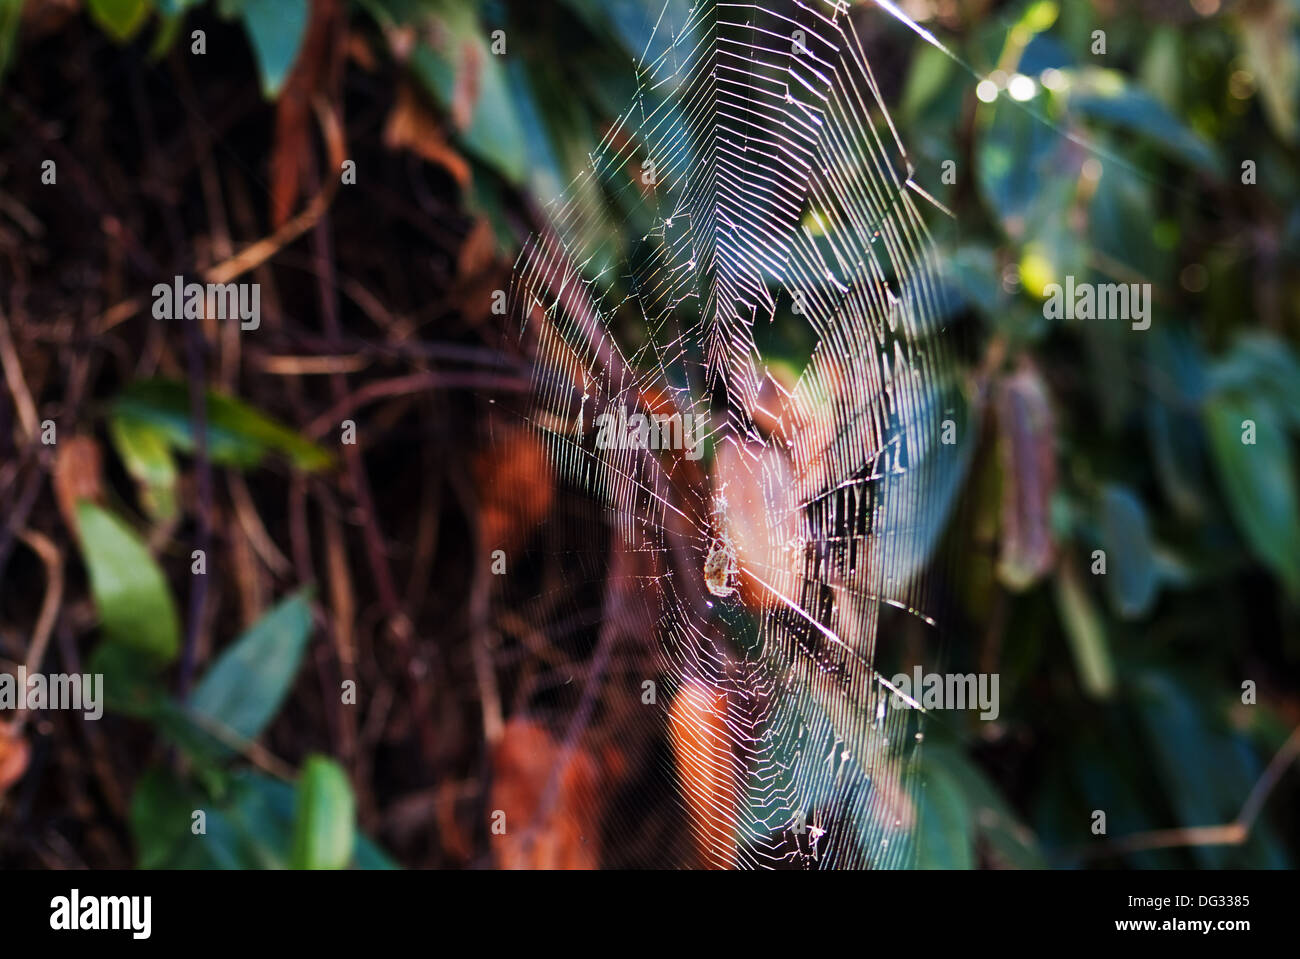 Spider in web back-lit by afternoon sunlight - Stock Image